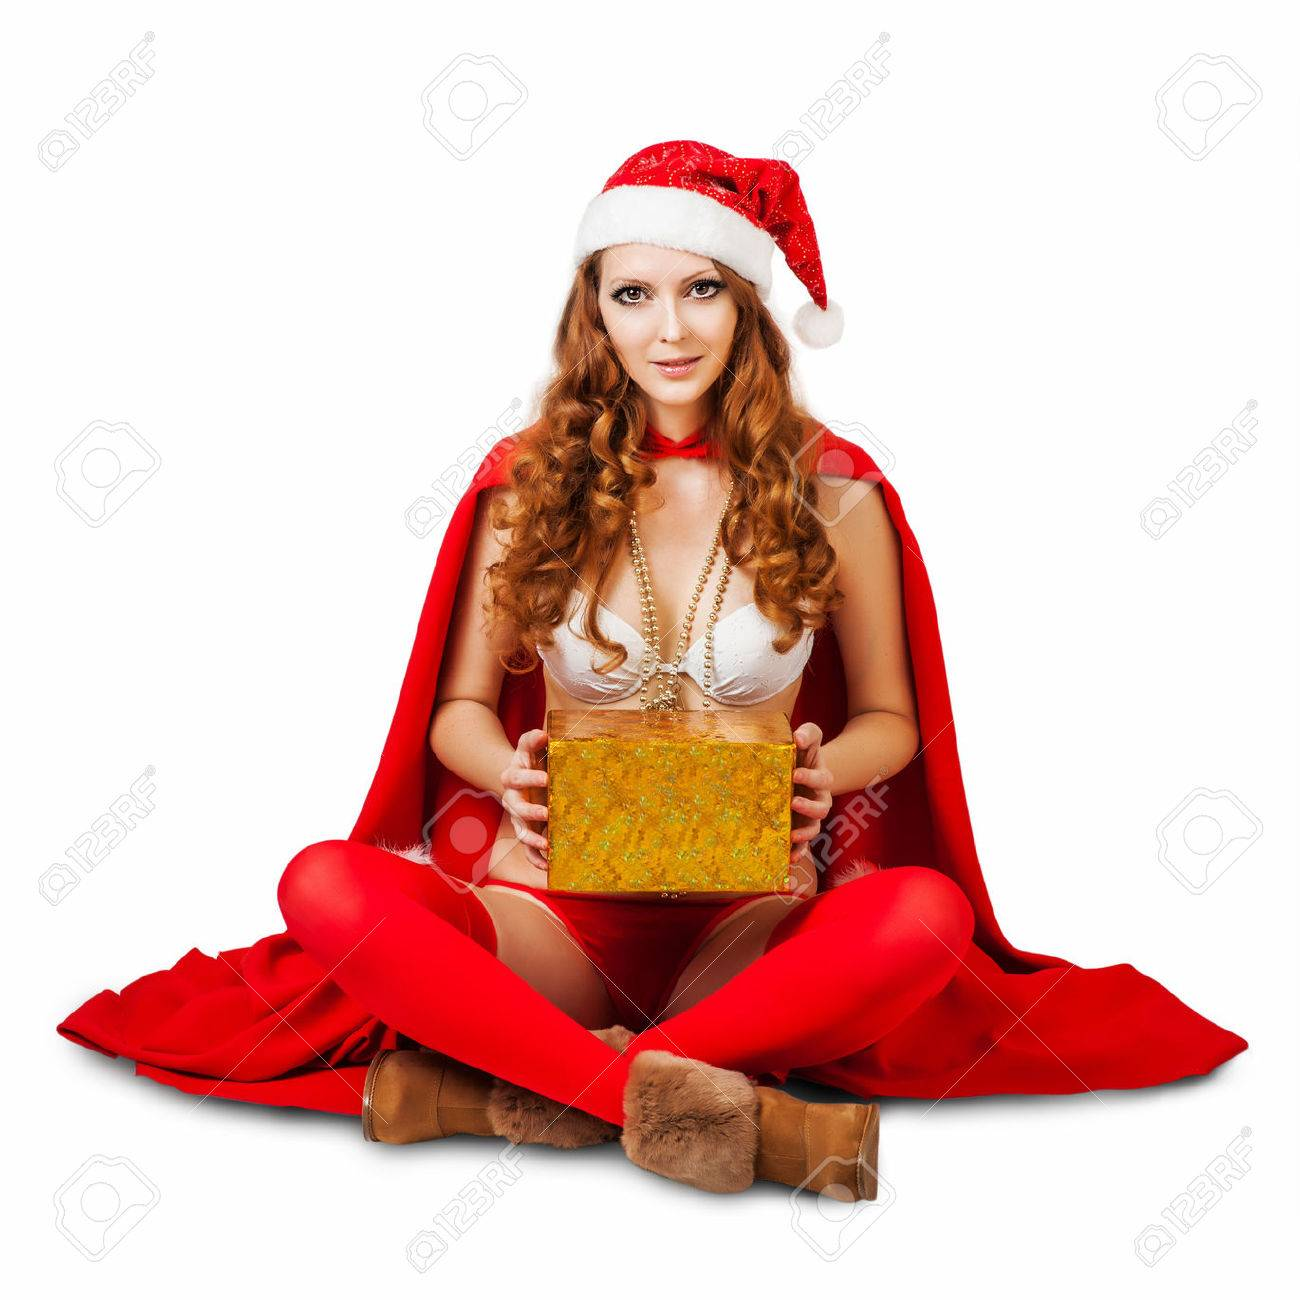 0bcdce8893665 Sexy christmas woman wearing bikini and red santa claus hat holding gift  boxes isolated on white